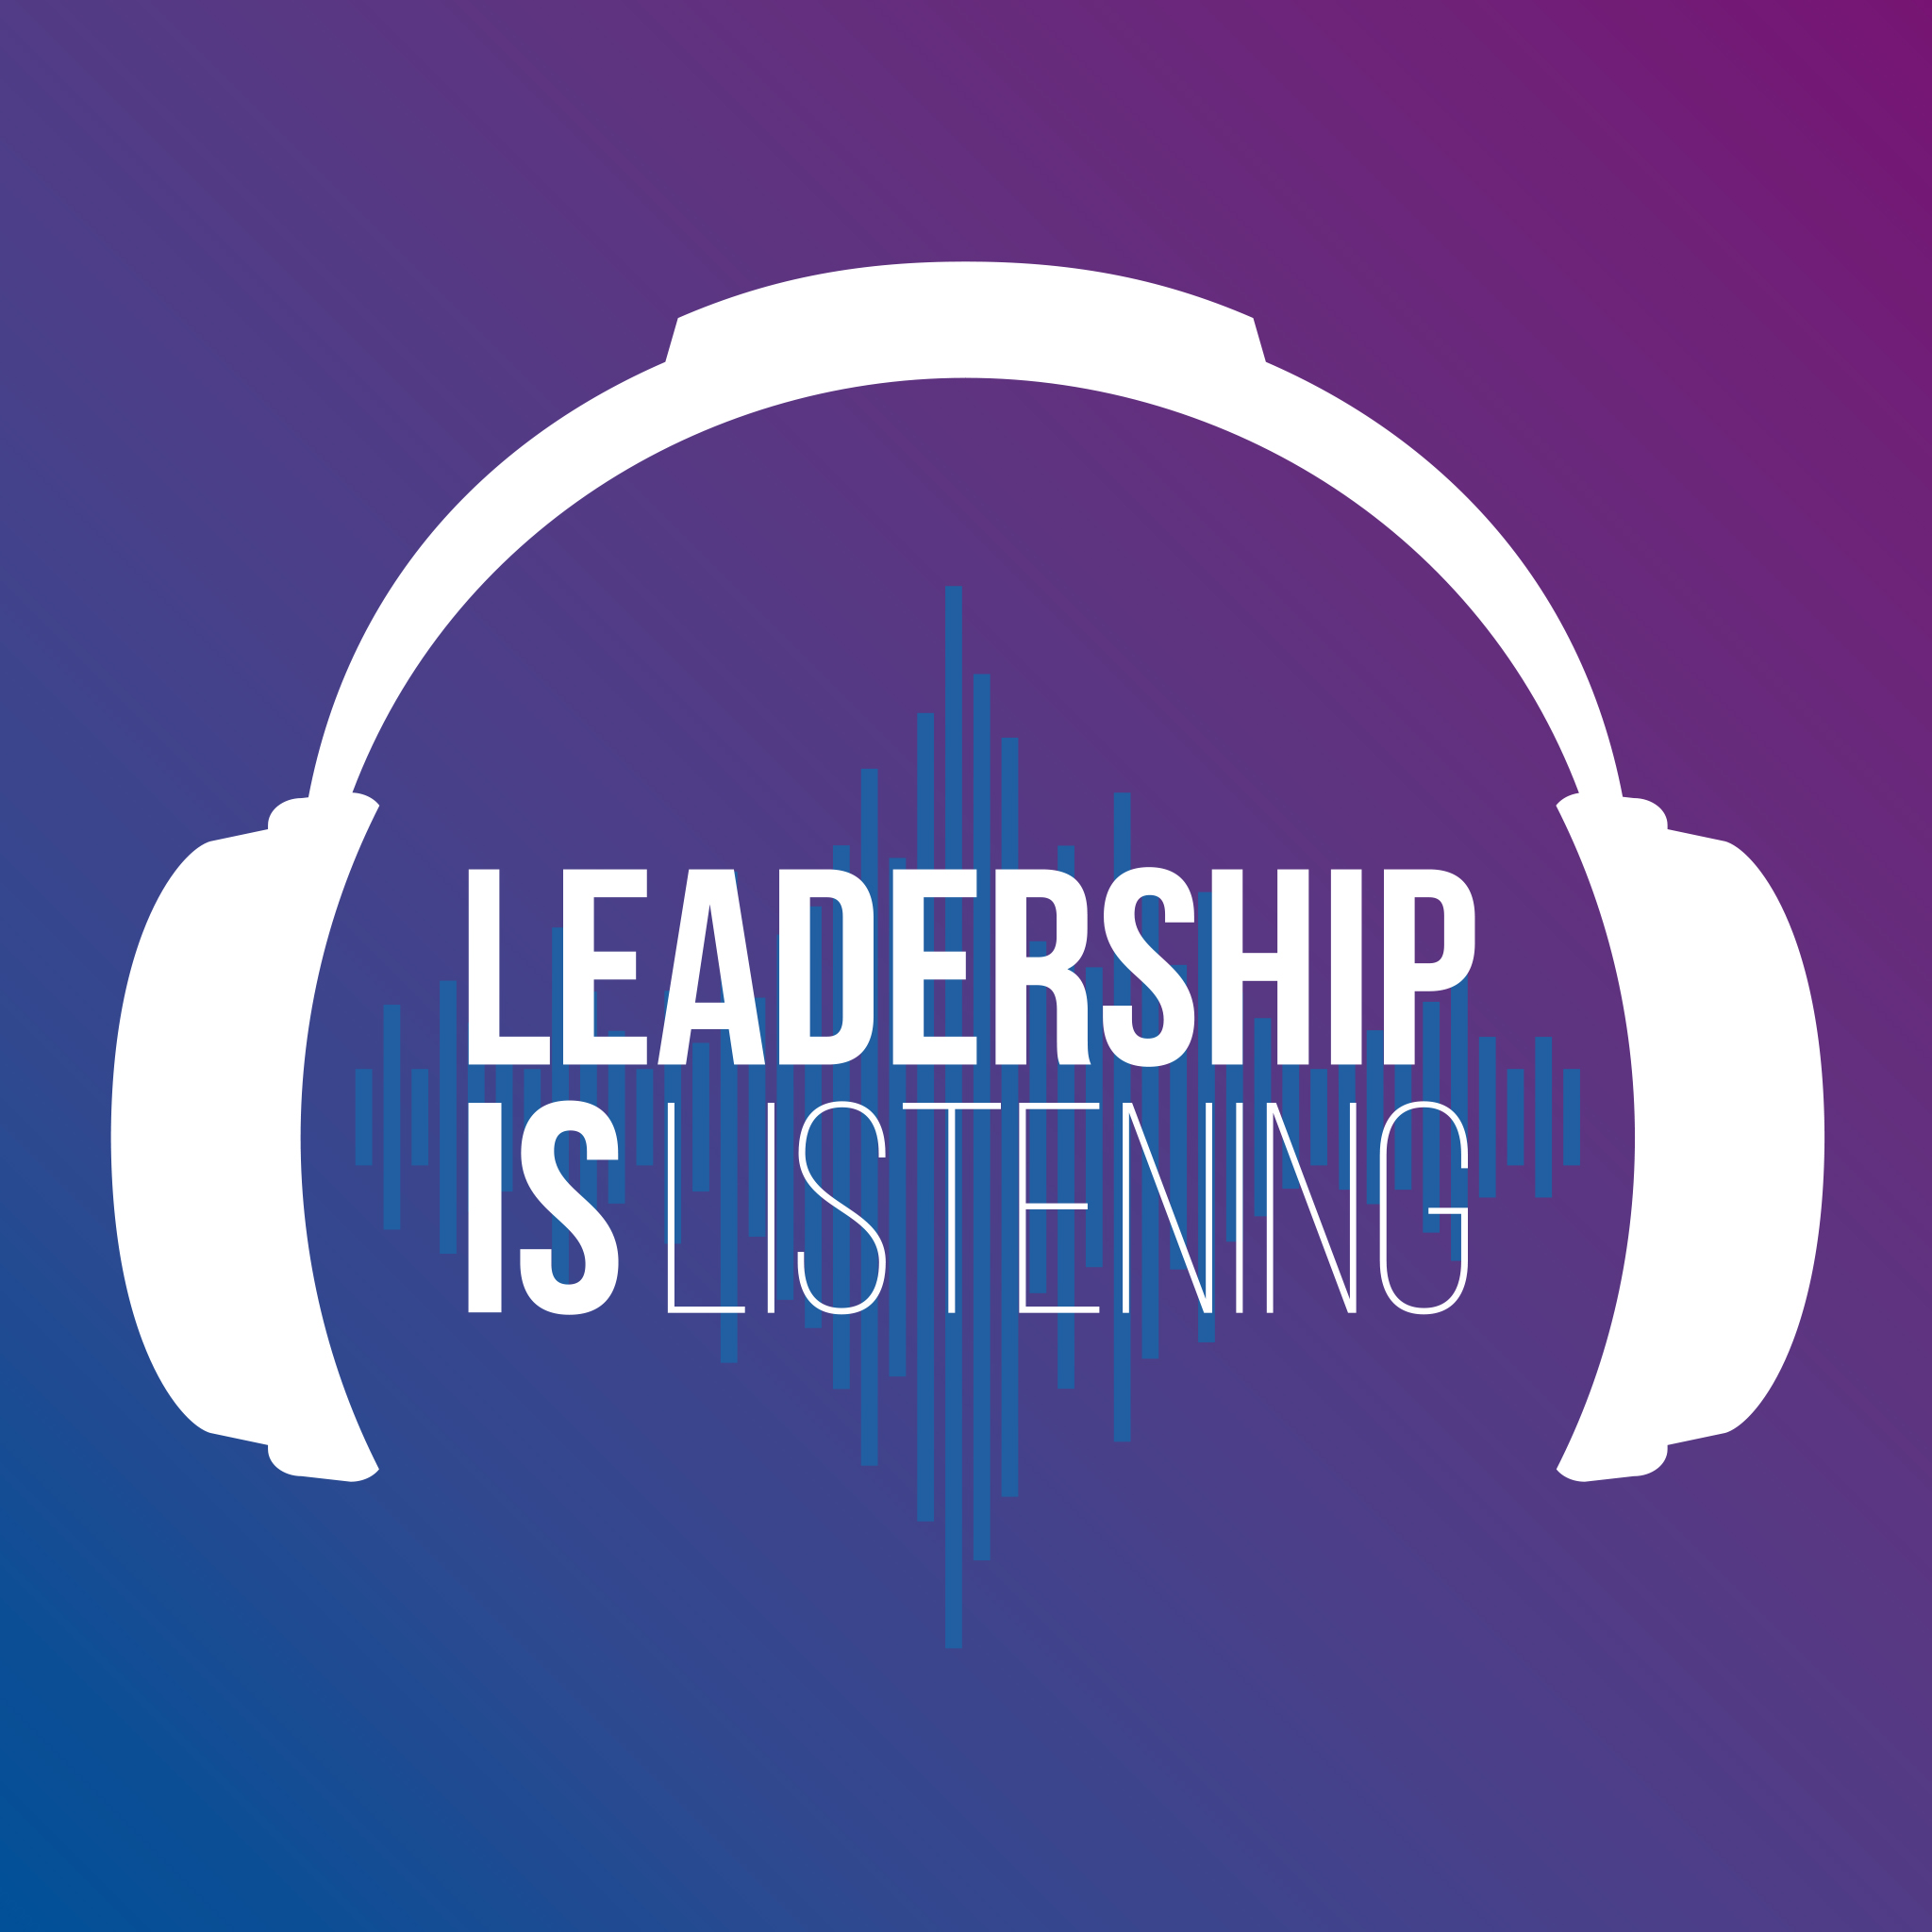 Leadership is Listening